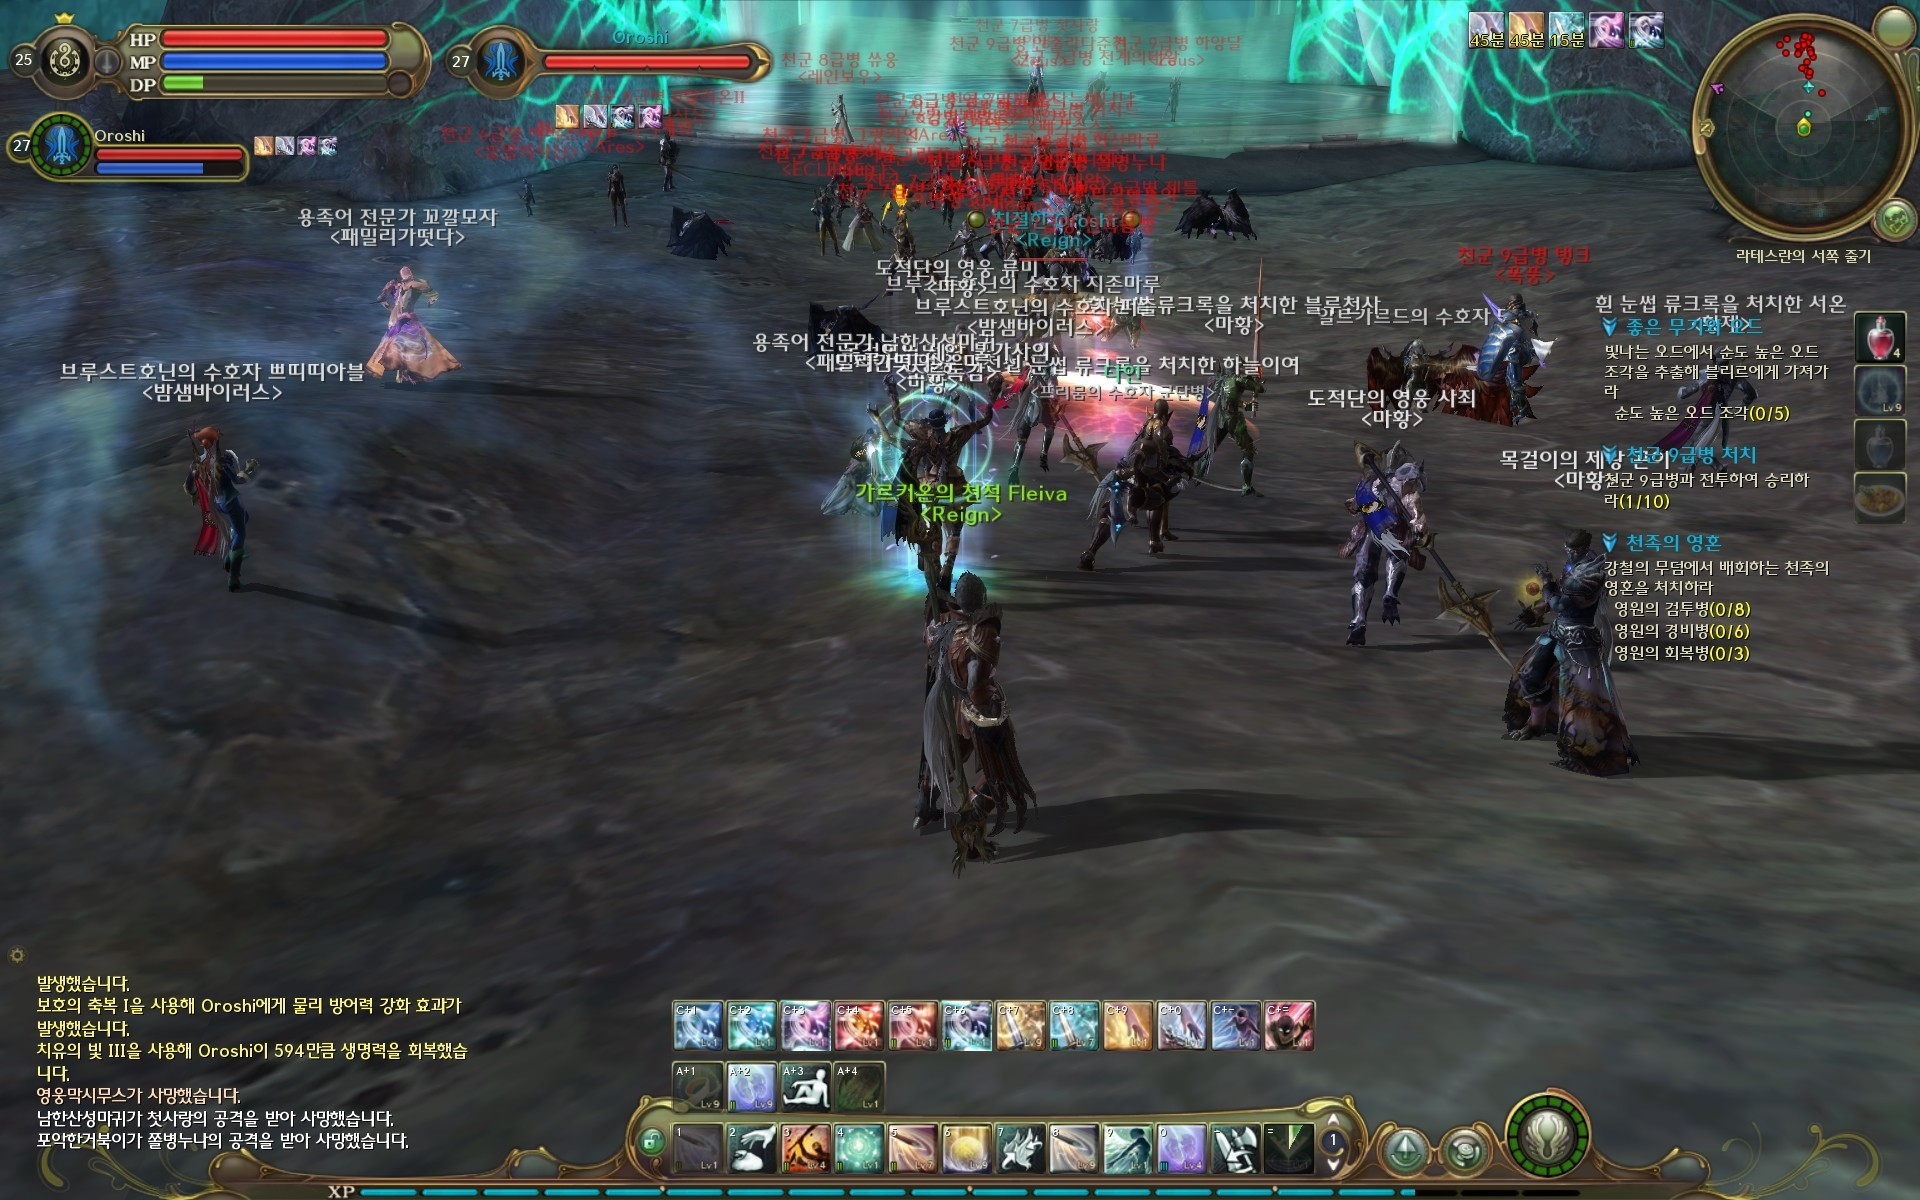 Aion - Mass PvP in the abyss